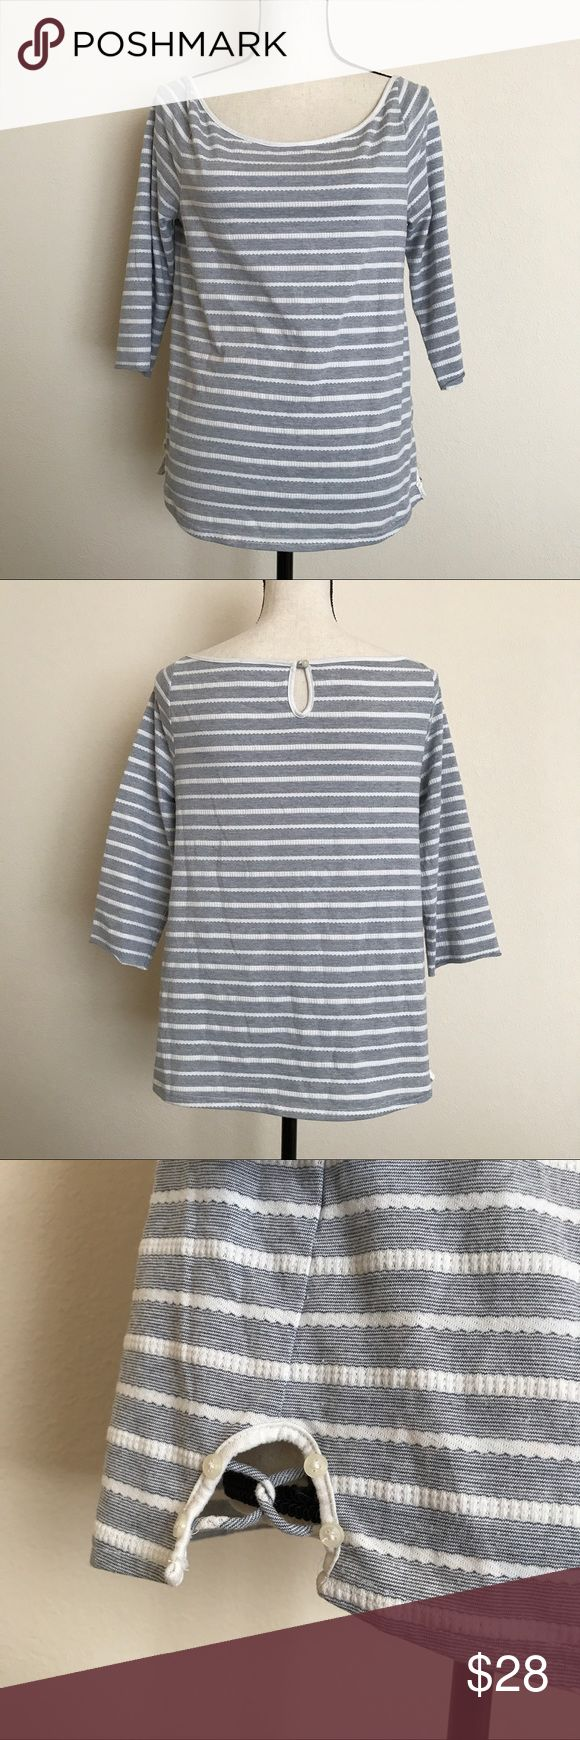 Postmark Anthropologie Nautical Striped Top Great Pre-Owned Condition. Blue and White Stripes. Has a Nautical look to it. Cute cross accents on the sides. Anthropologie Tops Tees - Long Sleeve